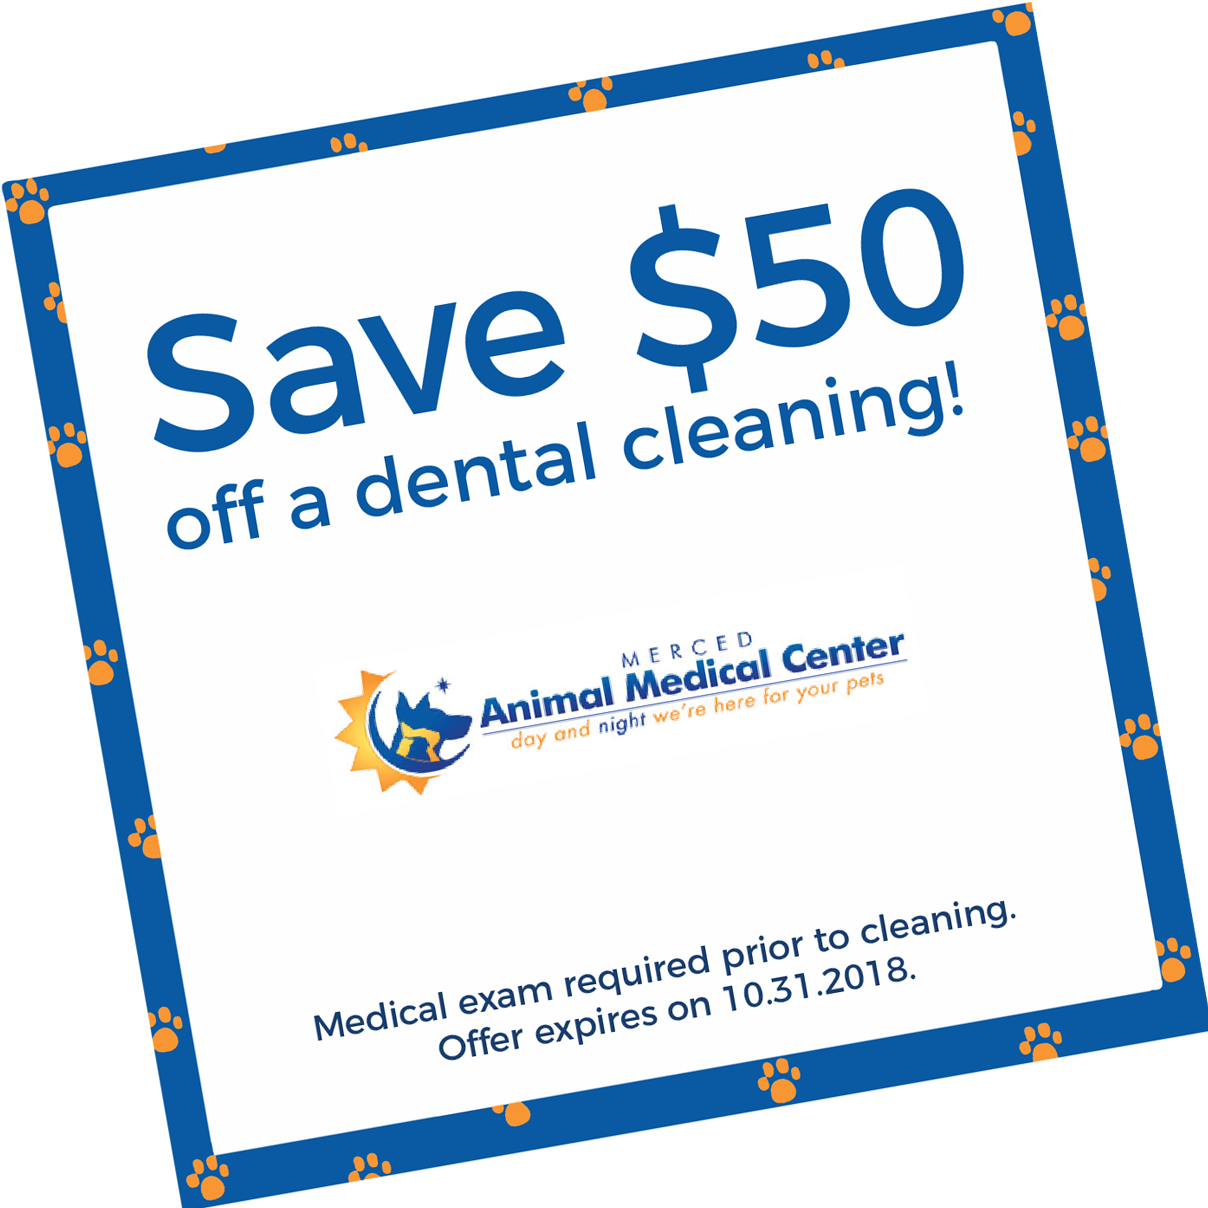 Save $50 off a dental cleaning! Medical exam required prior to cleaning. Offer expires on 10/31/18